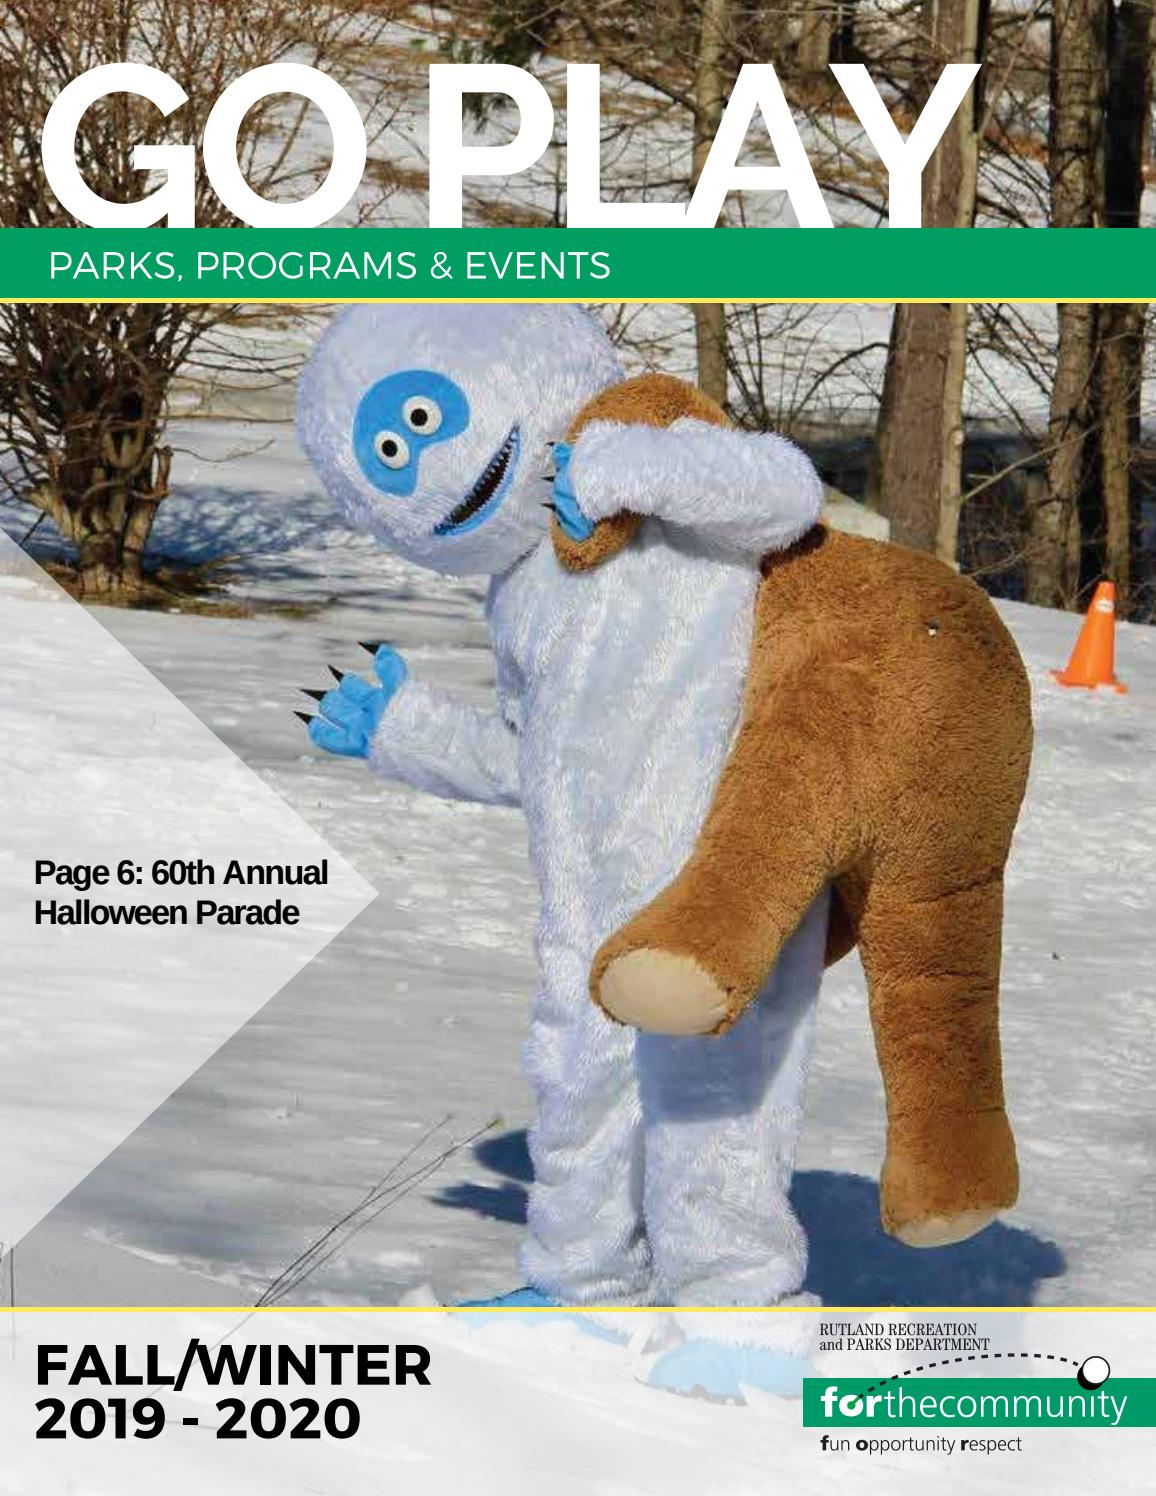 Events Rutland Vt October 13 2020.Fall Winter Go Play Guide 2019 2020 By Rutland Recreation